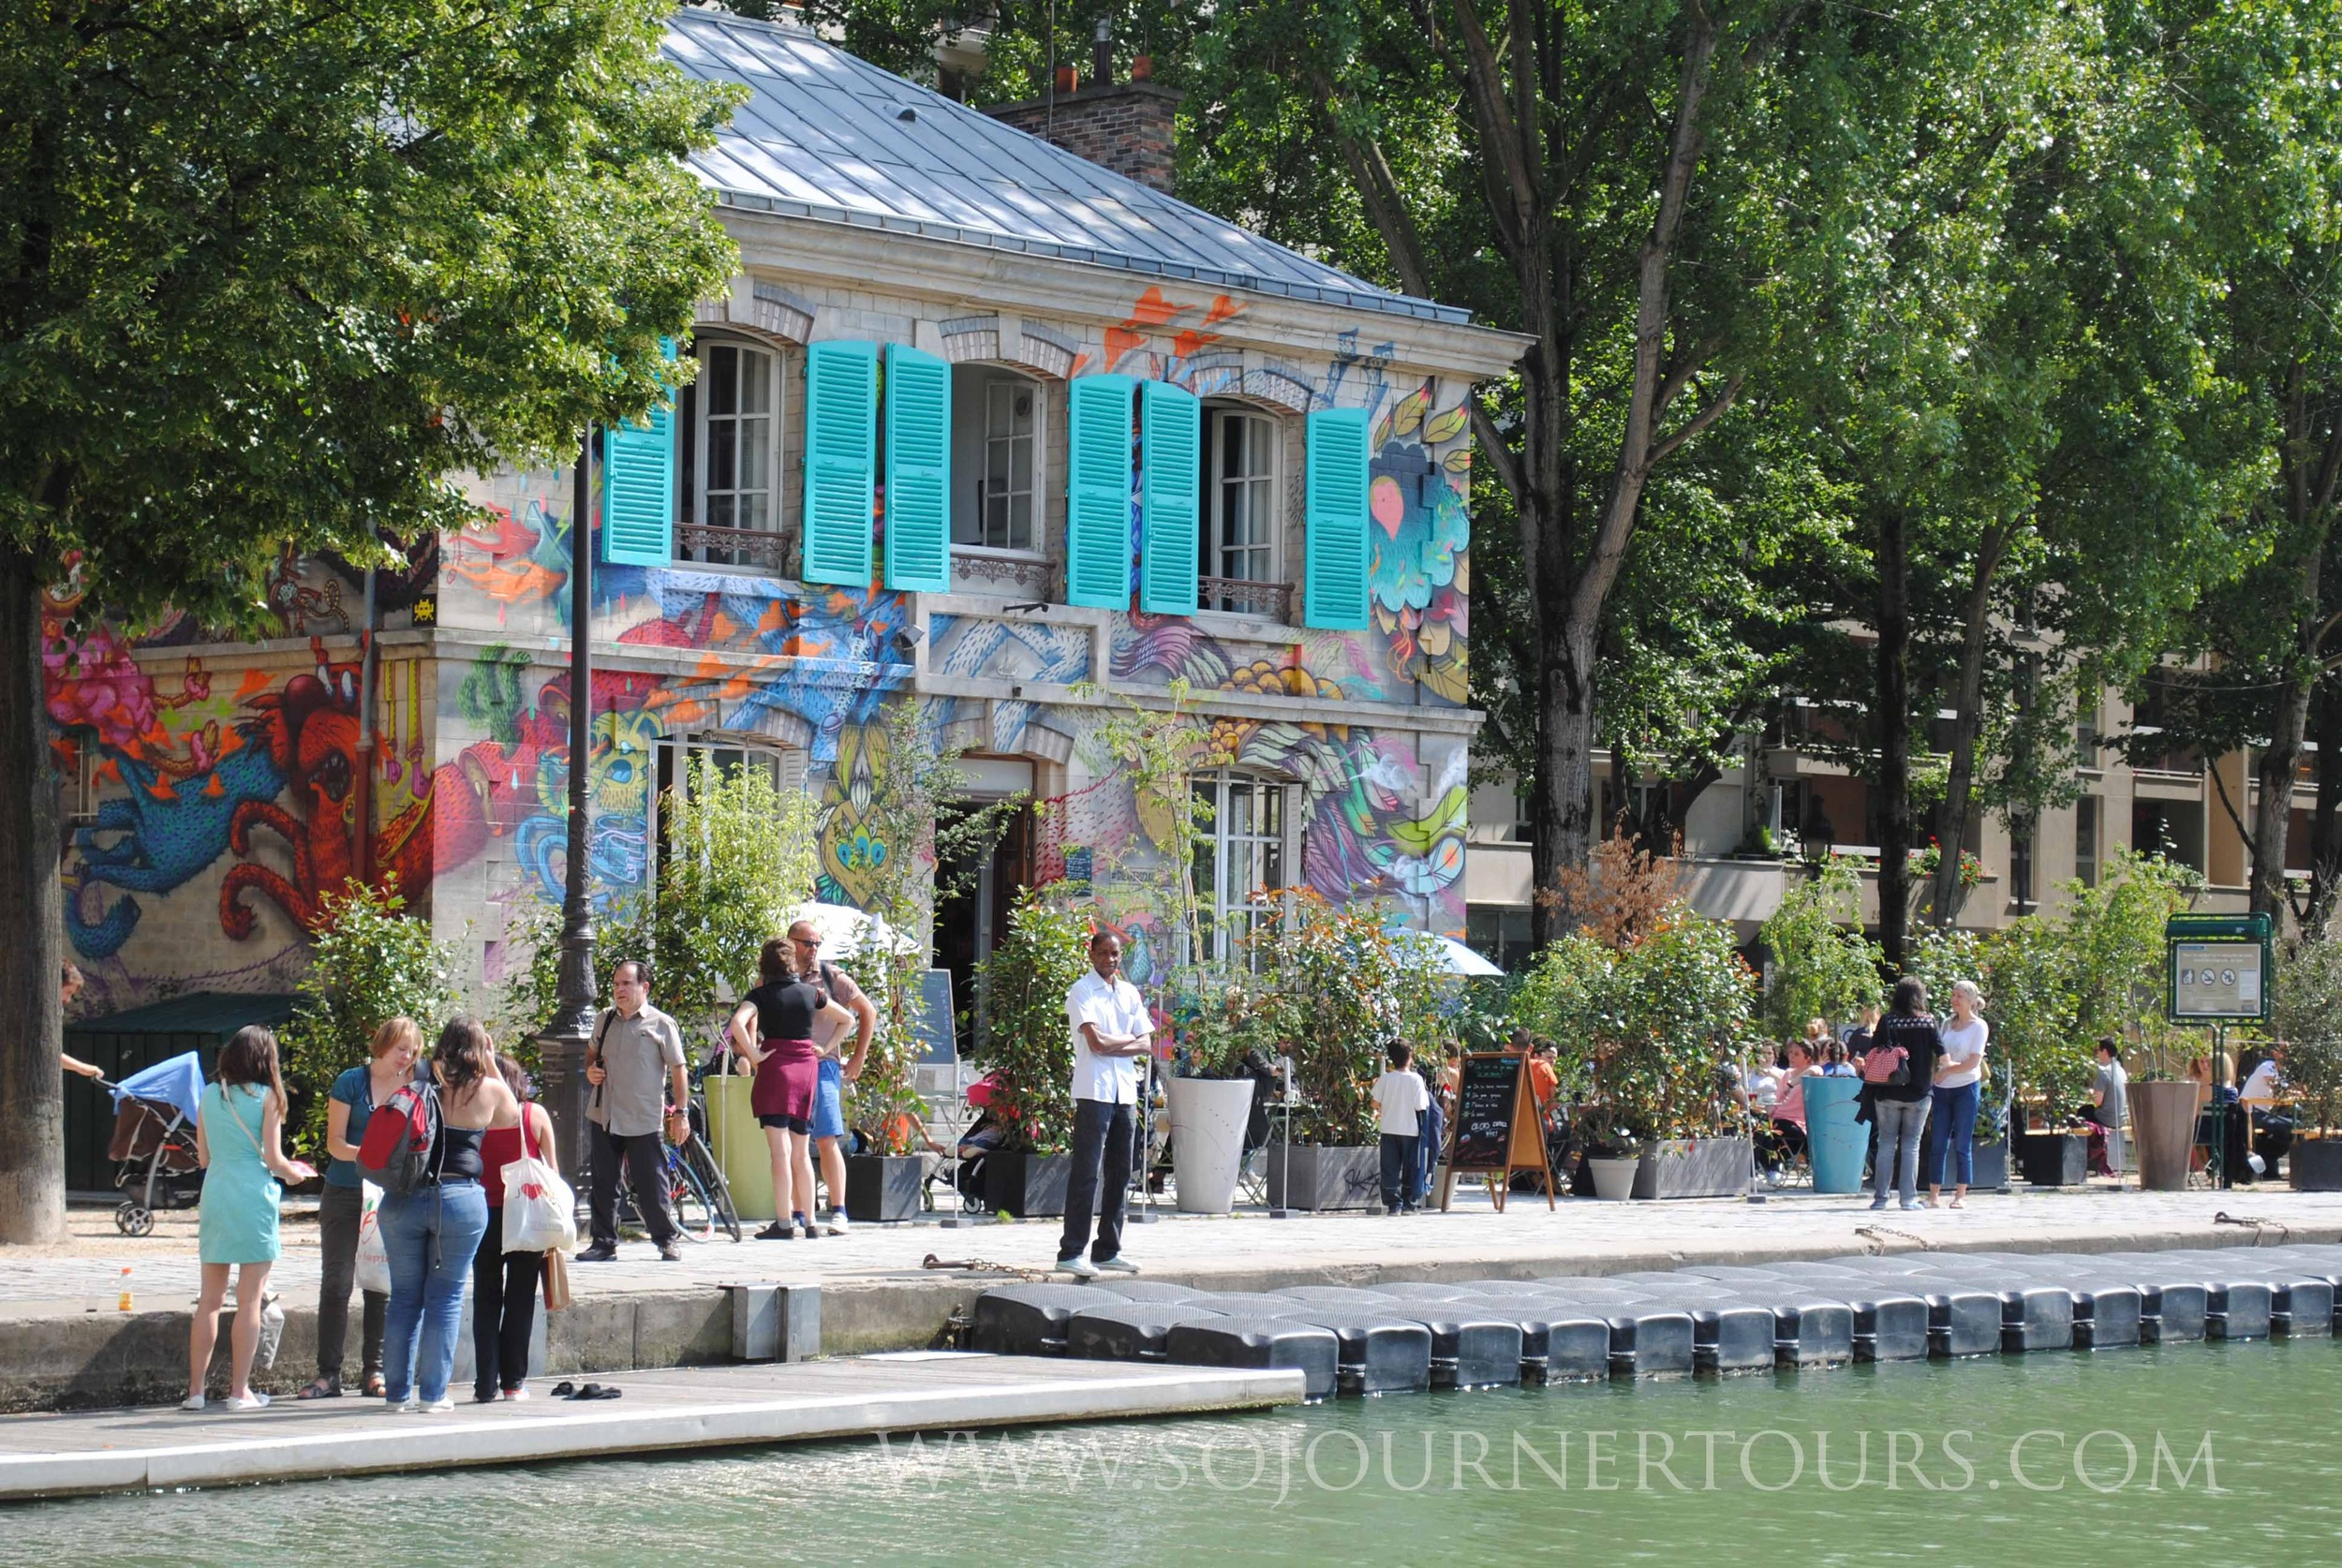 Canal de l'Ourcq: Paris, France (Sojourner Tours)